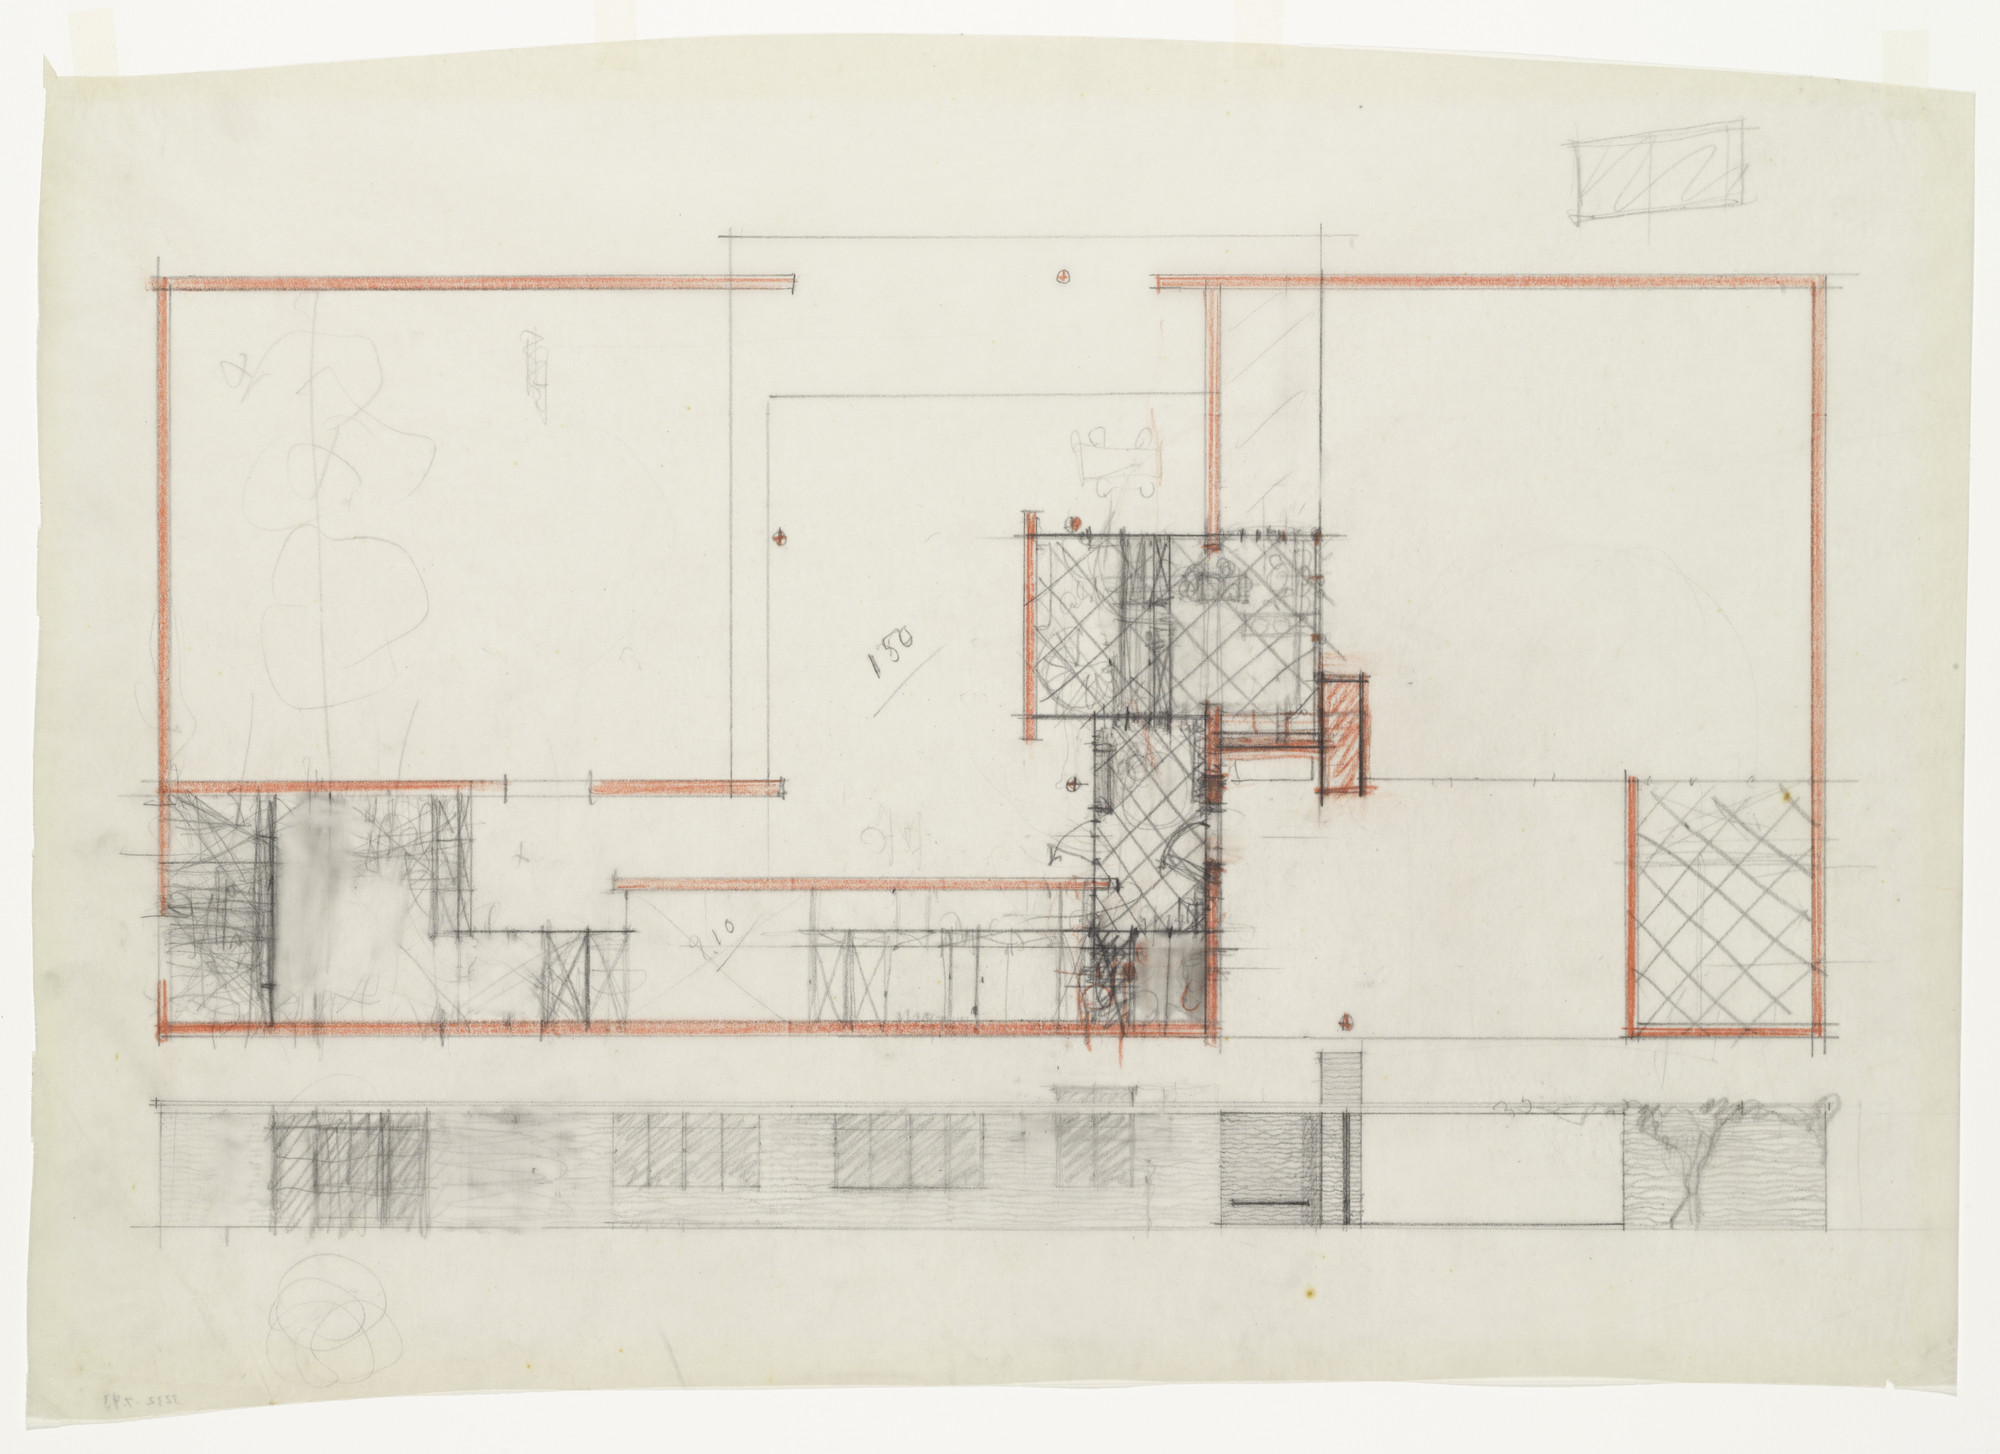 Ludwig Mies van der Rohe. Ulrich Lange House Project, Krefeld, Germany, Plan and exterior elevation. 1935